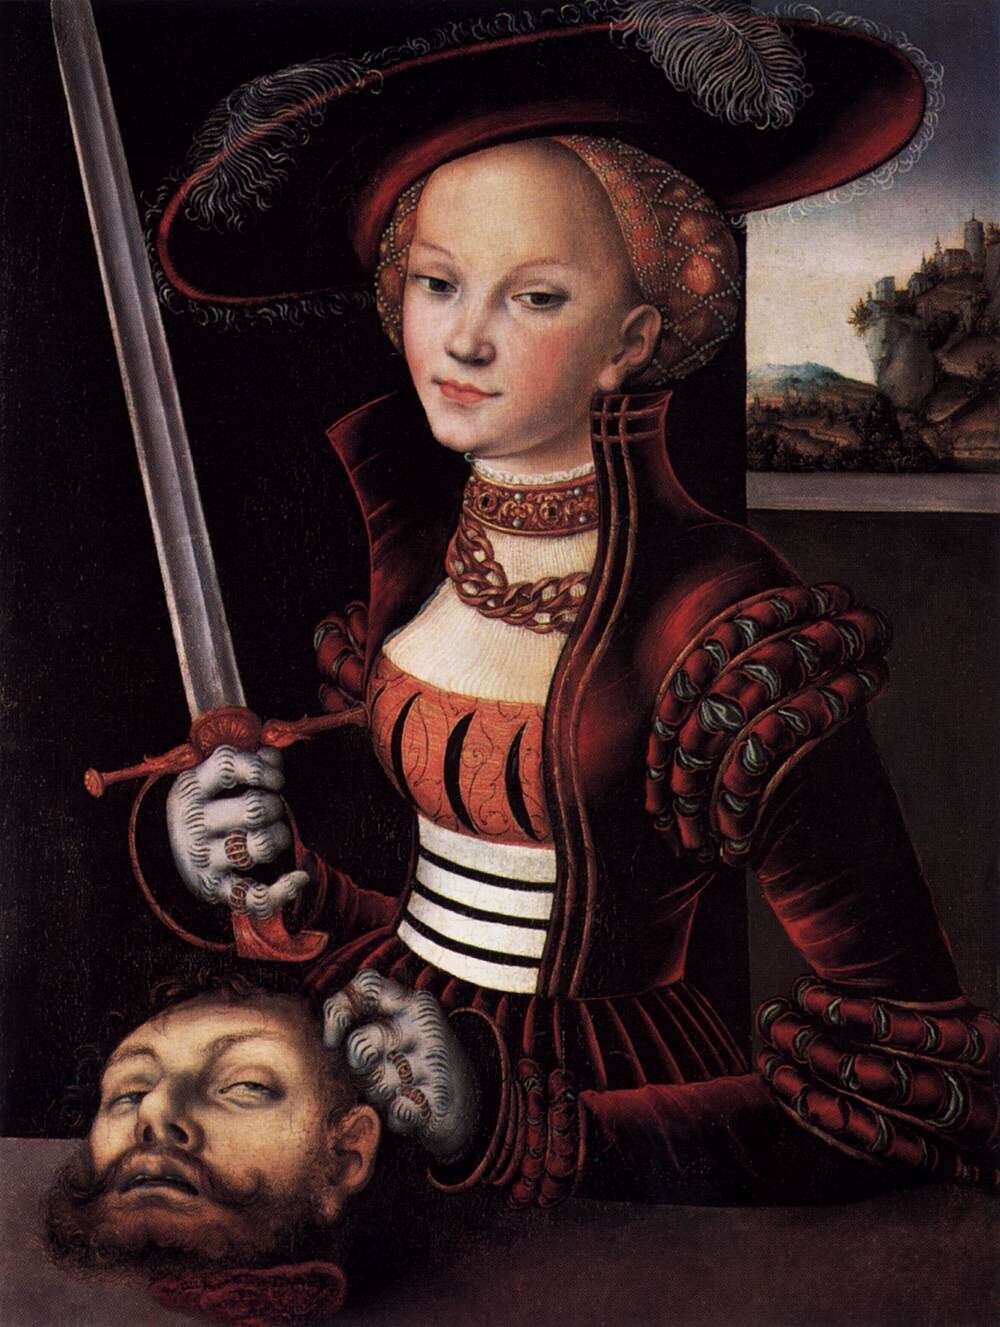 Lucas Cranach the Elder, Judith with the Head of Holofernes, ca. 1530. Image via Wikimedia Commons.